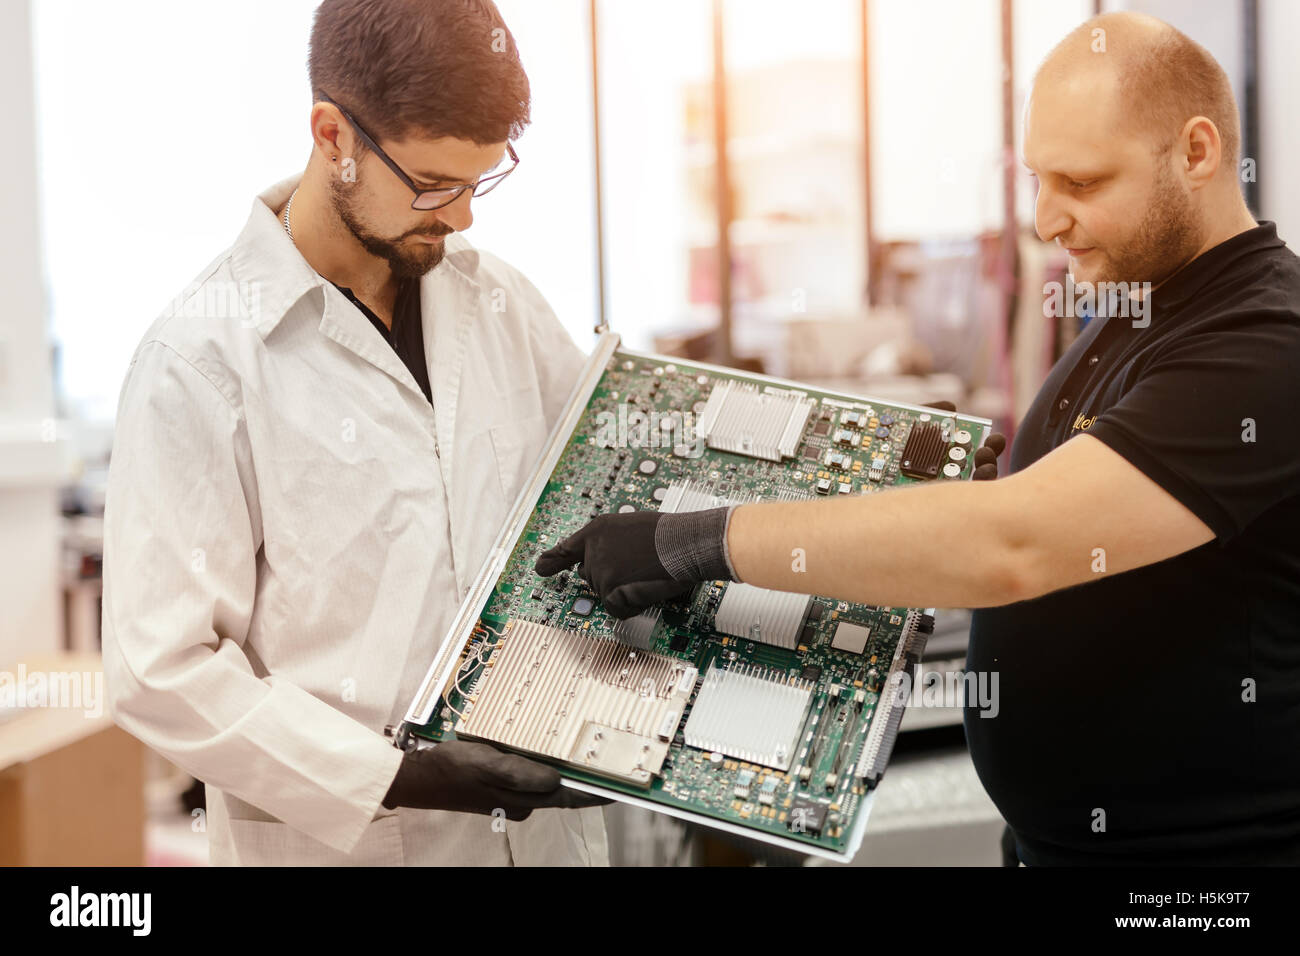 CMTS card needs to be fixed by technician - Stock Image